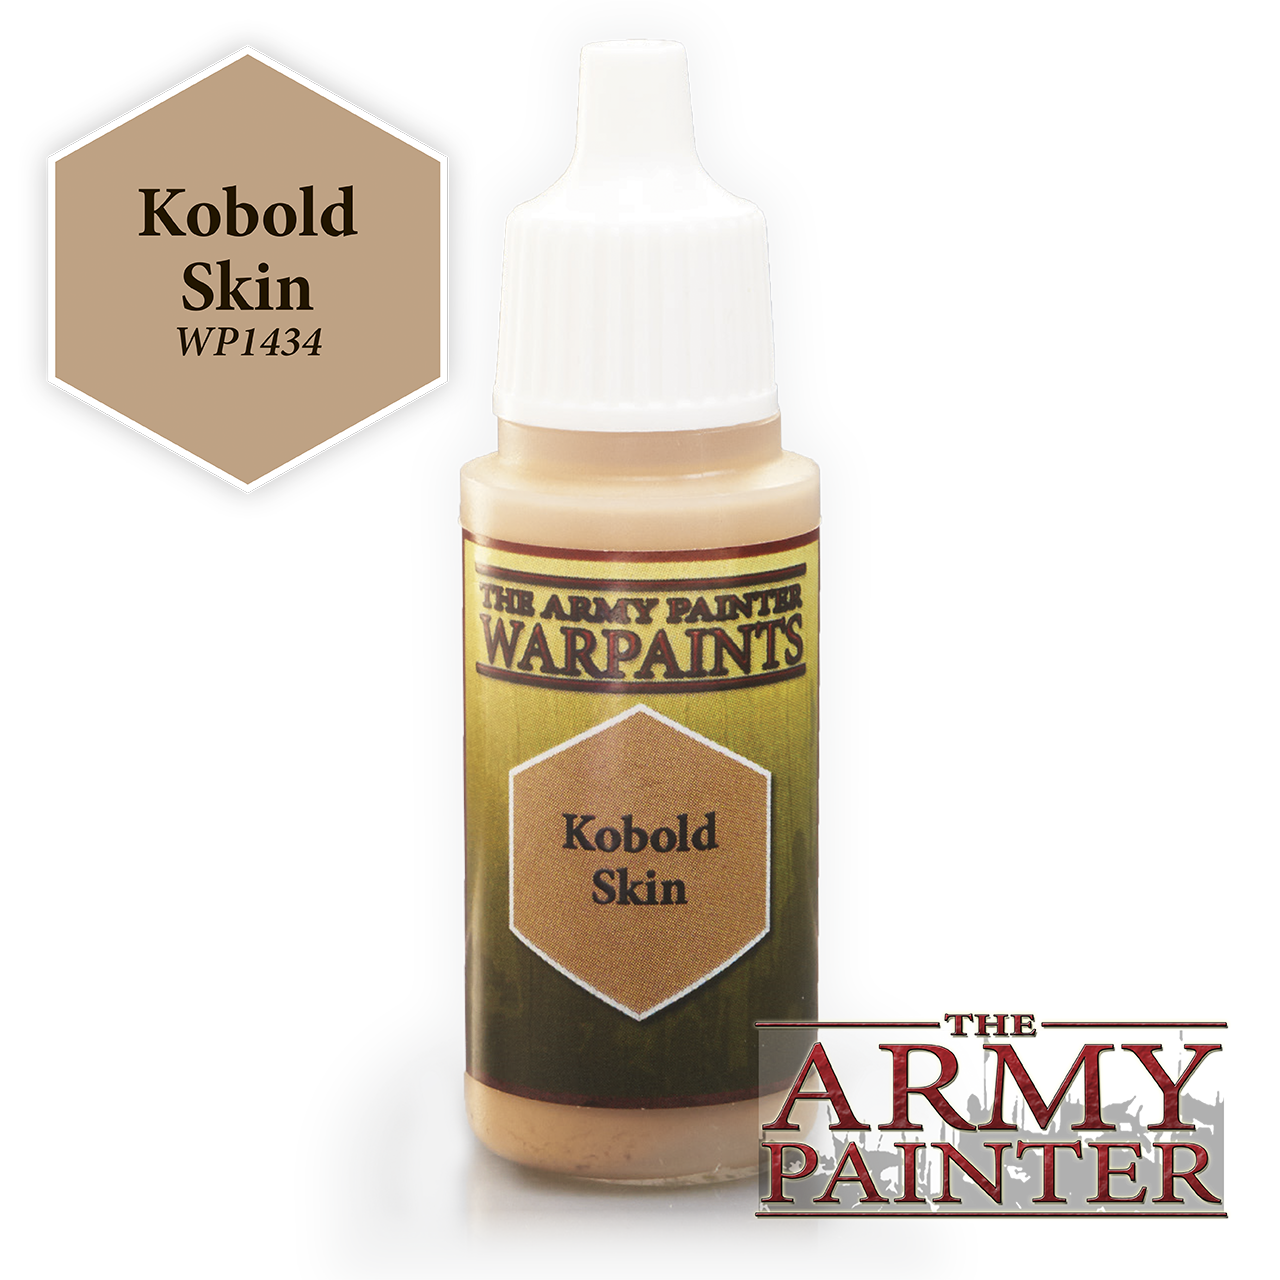 The Army Painter Warpaints: Kobold Skin (18ml)